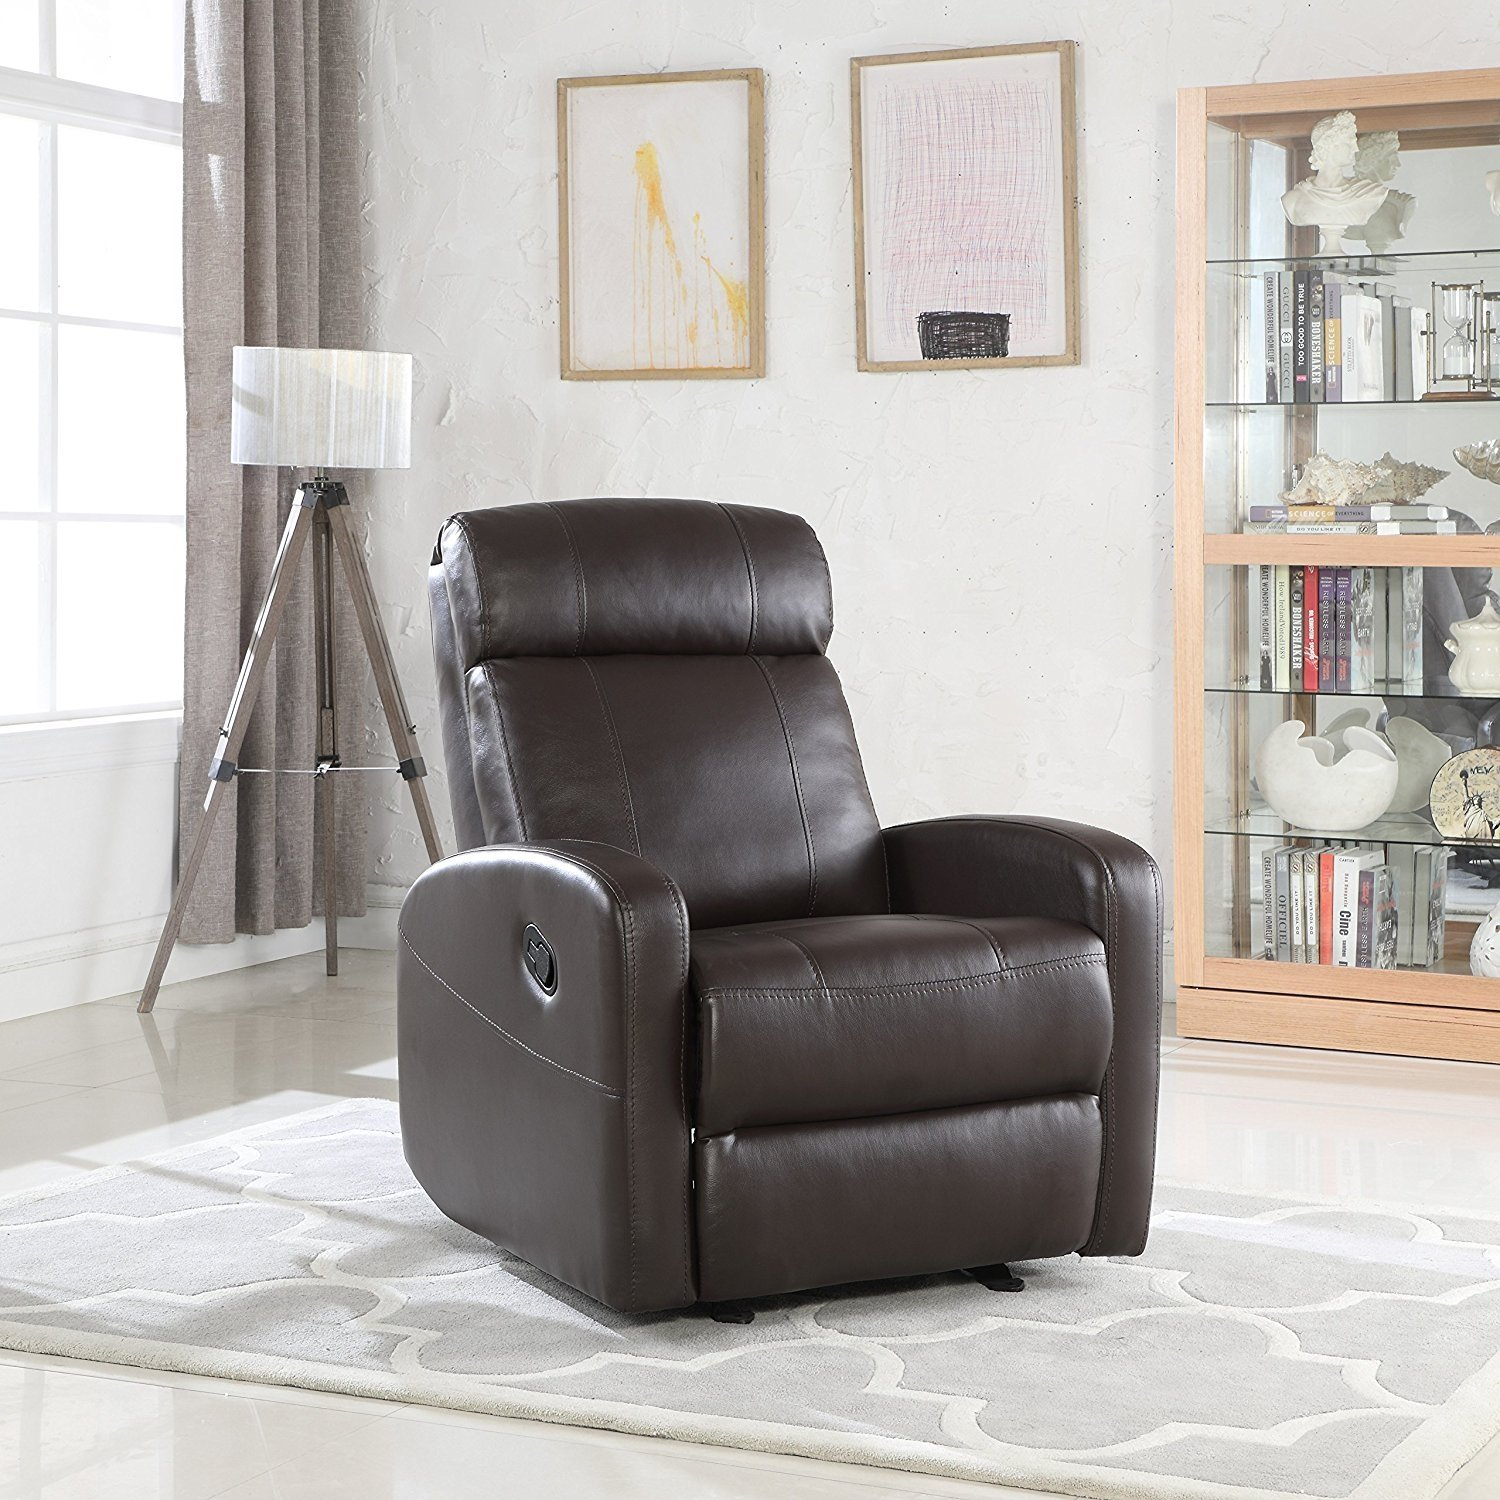 Modern Living Room Recliners Overstuffed Sleek Modern Living Room Faux Leather Recliner Chair Black